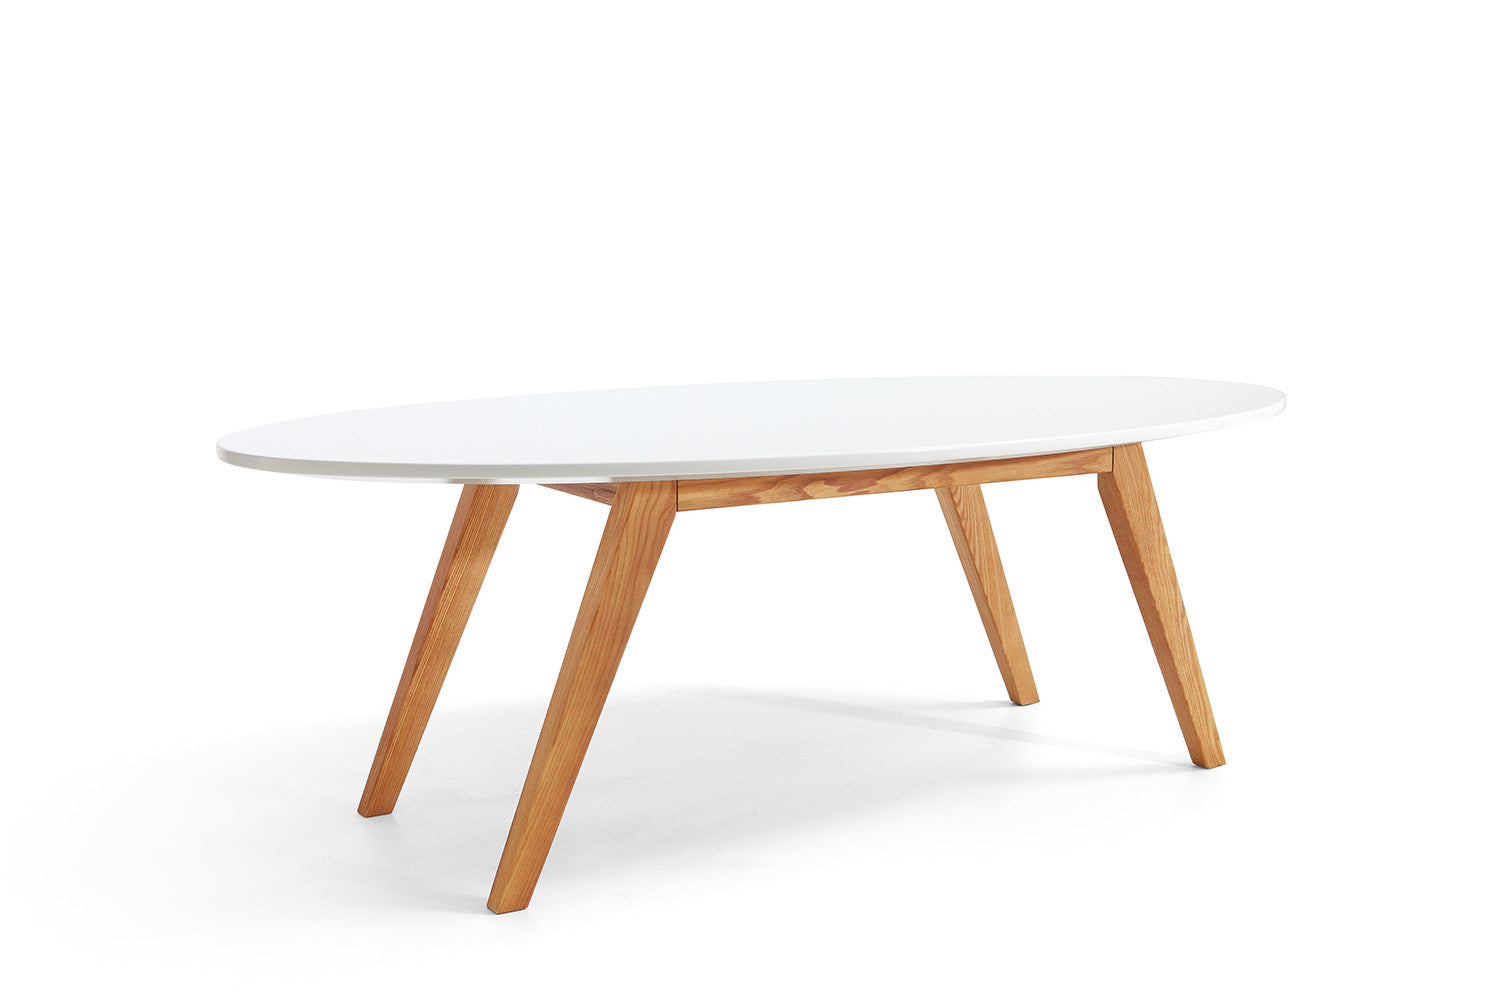 Table basse design en bois blanche b le dewarens - Table basse bois but ...